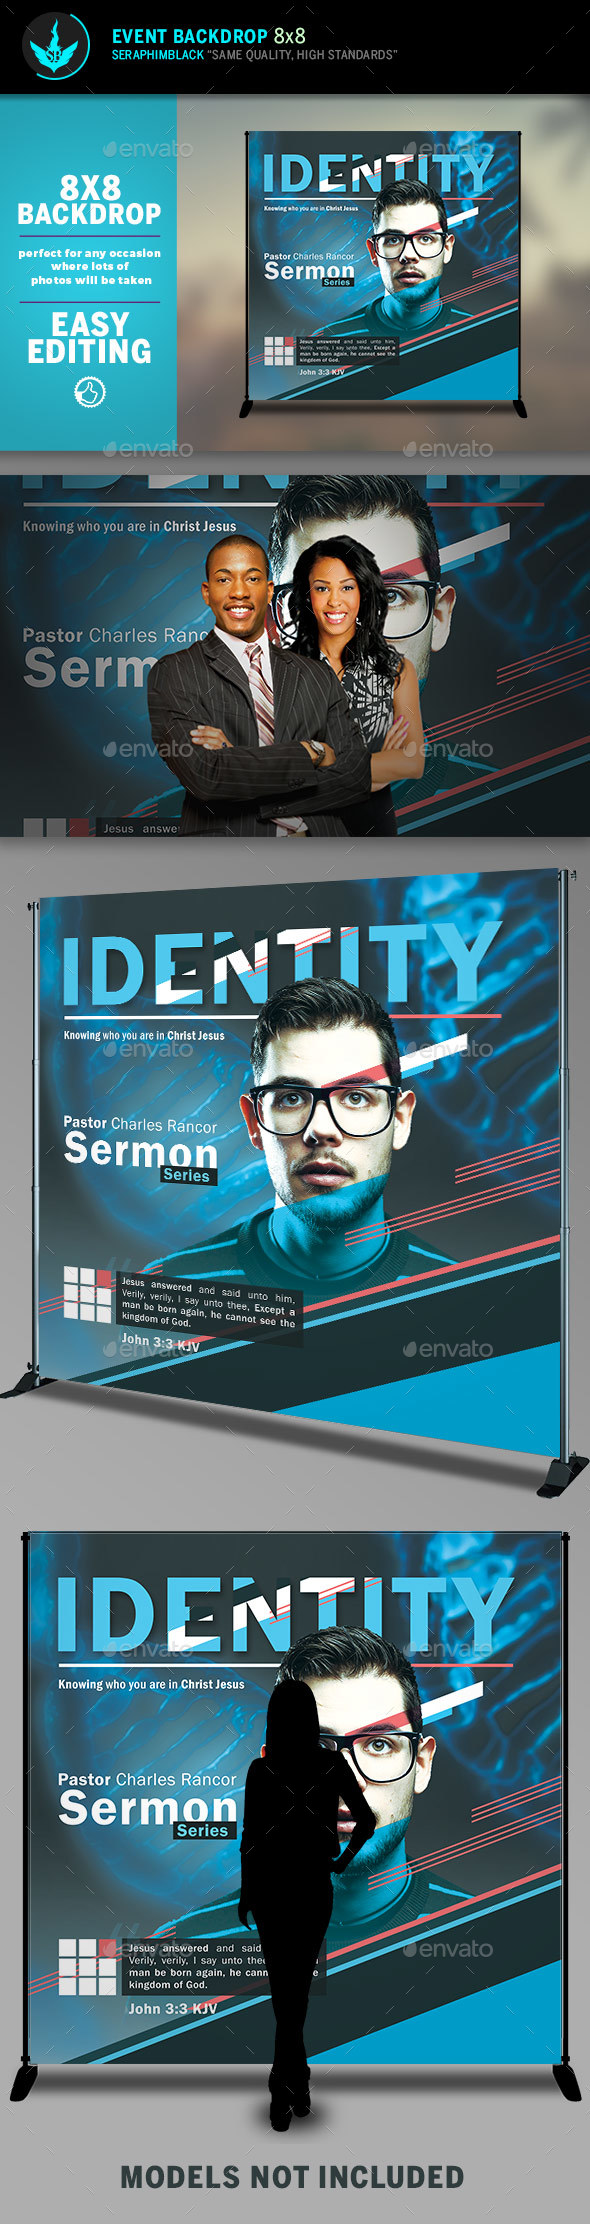 Identity 8x8 Event Backdrop Template - Signage Print Templates